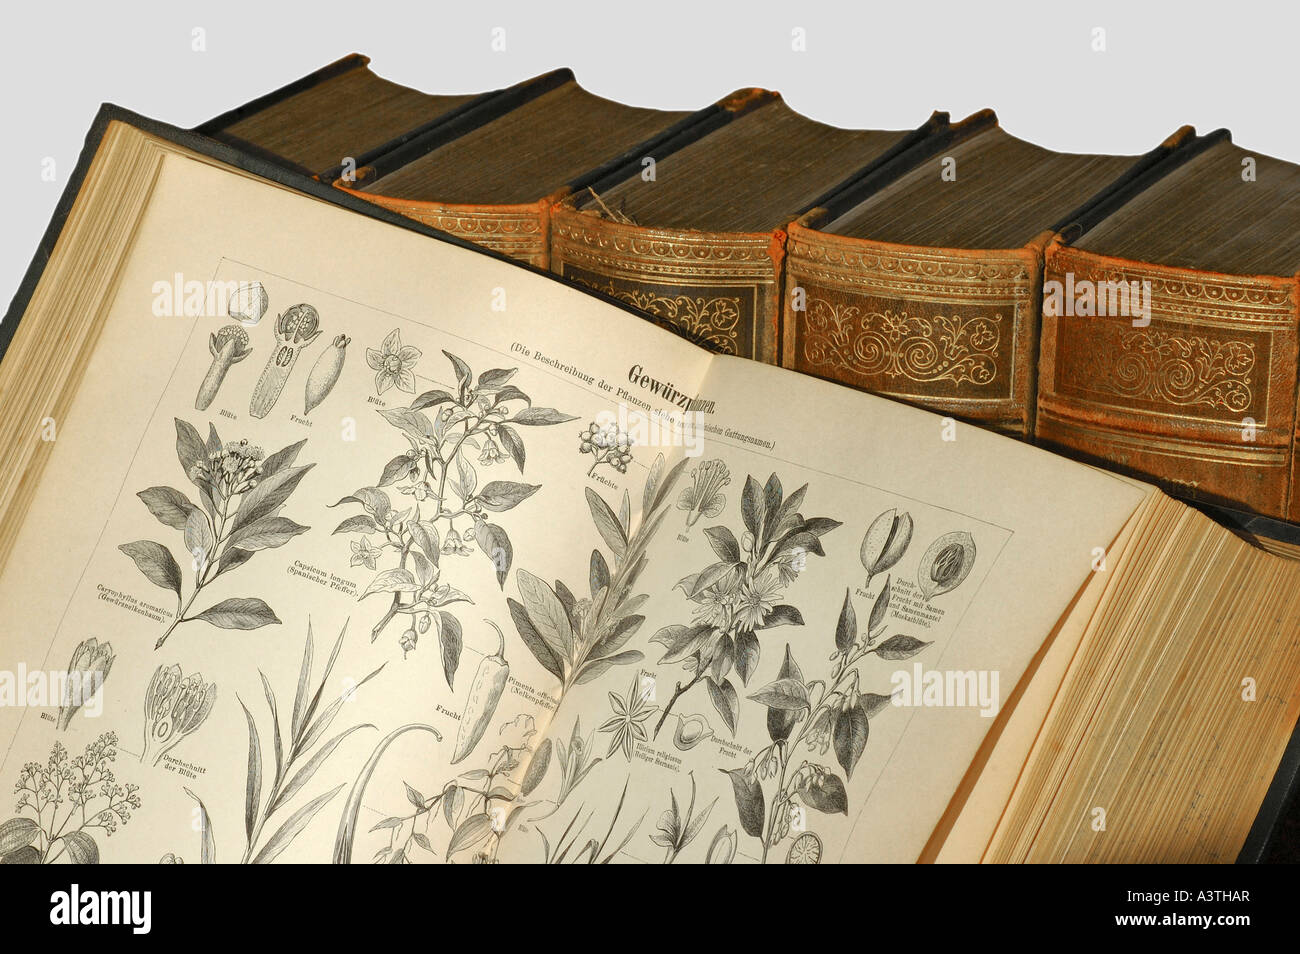 Illustrations of spice plants in an old encyclopedia - Stock Image